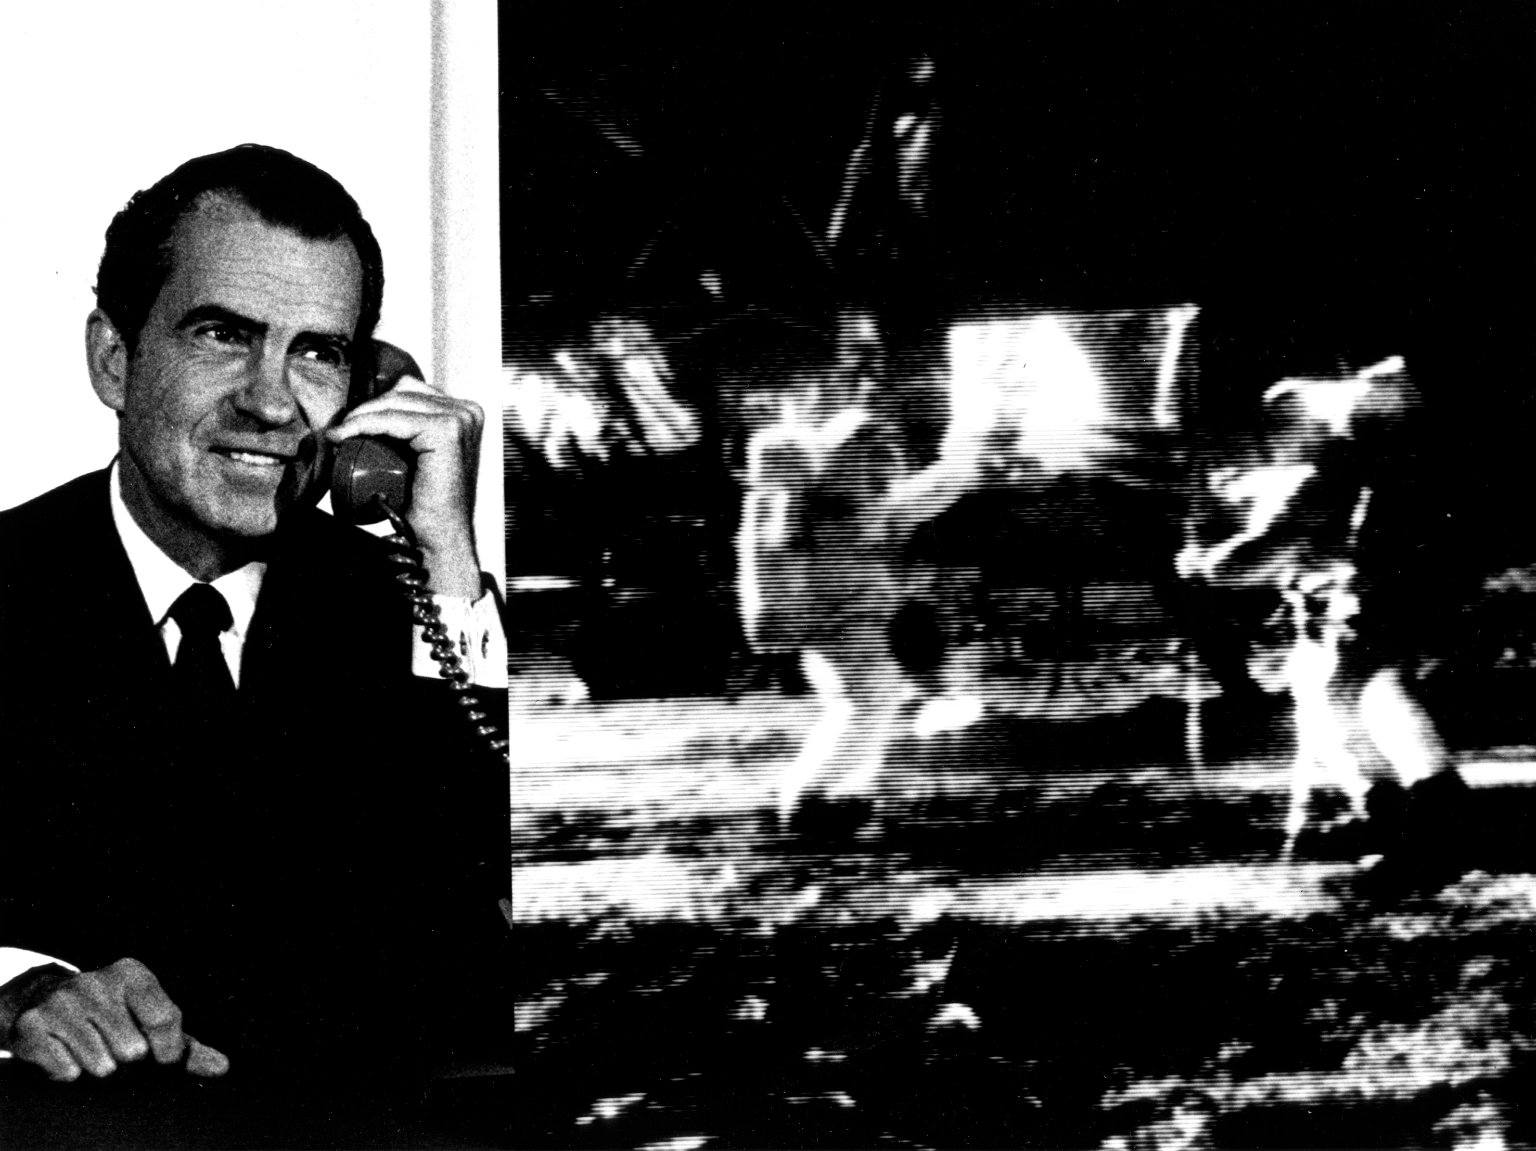 Nixon Telephones Armstrong on the Moon